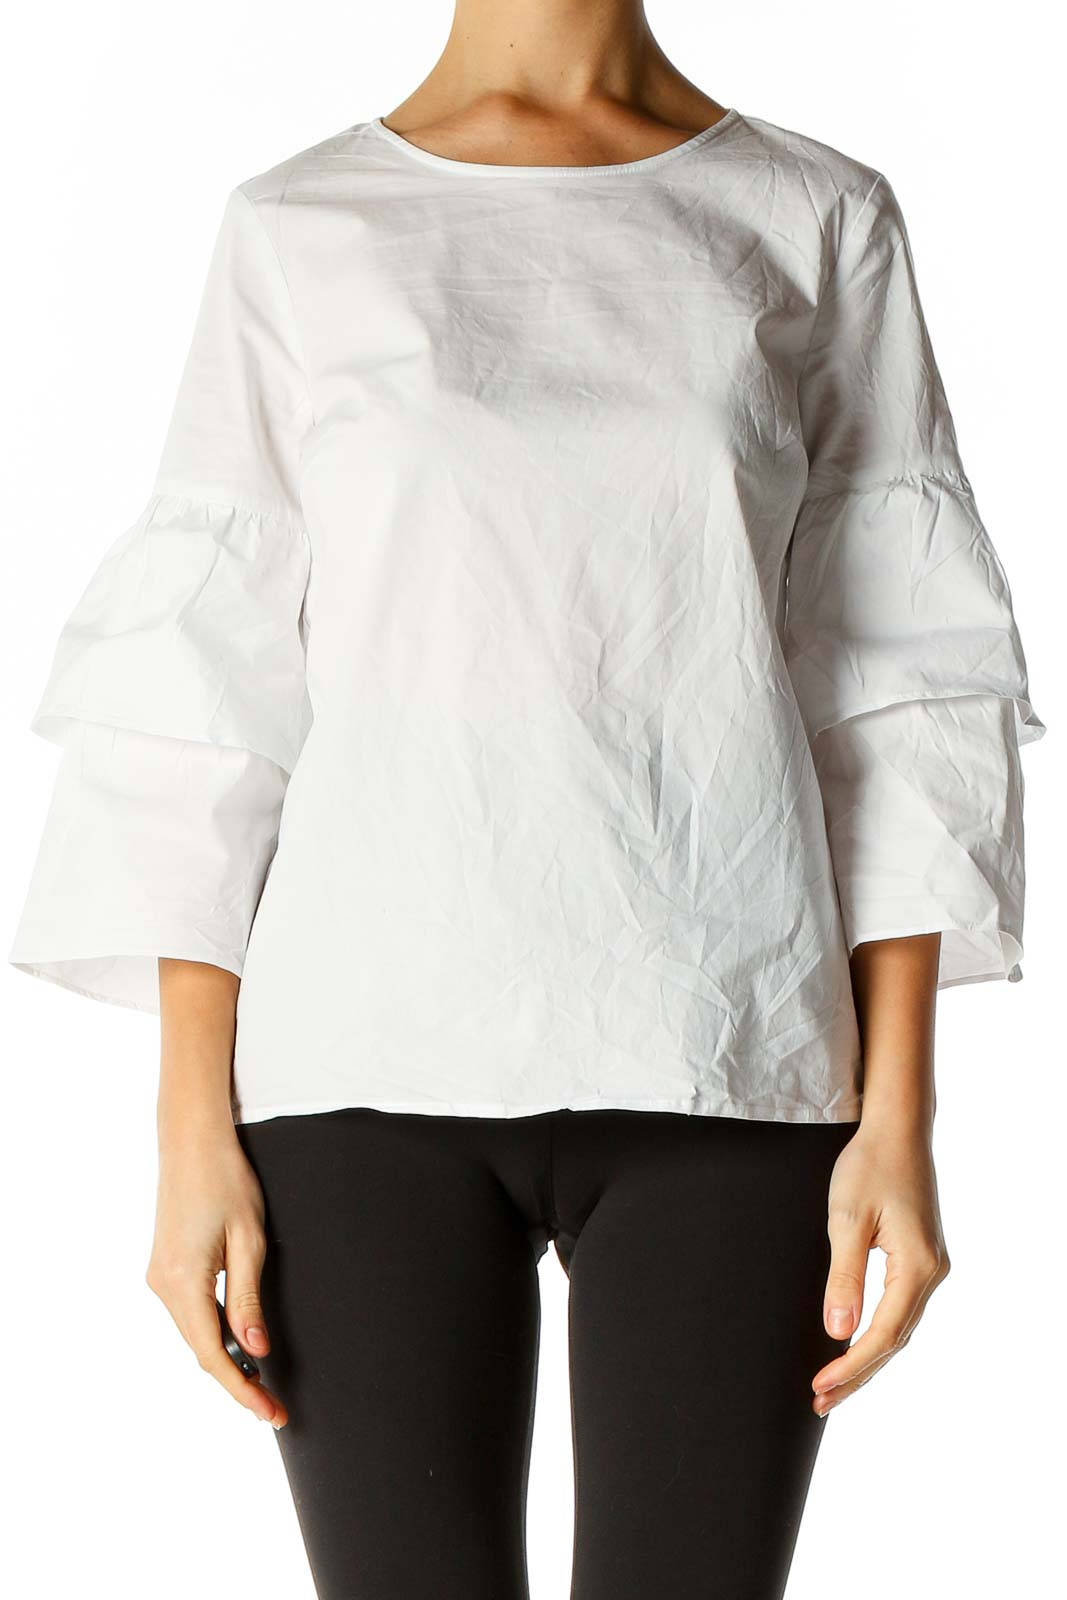 White Solid Retro Blouse Front